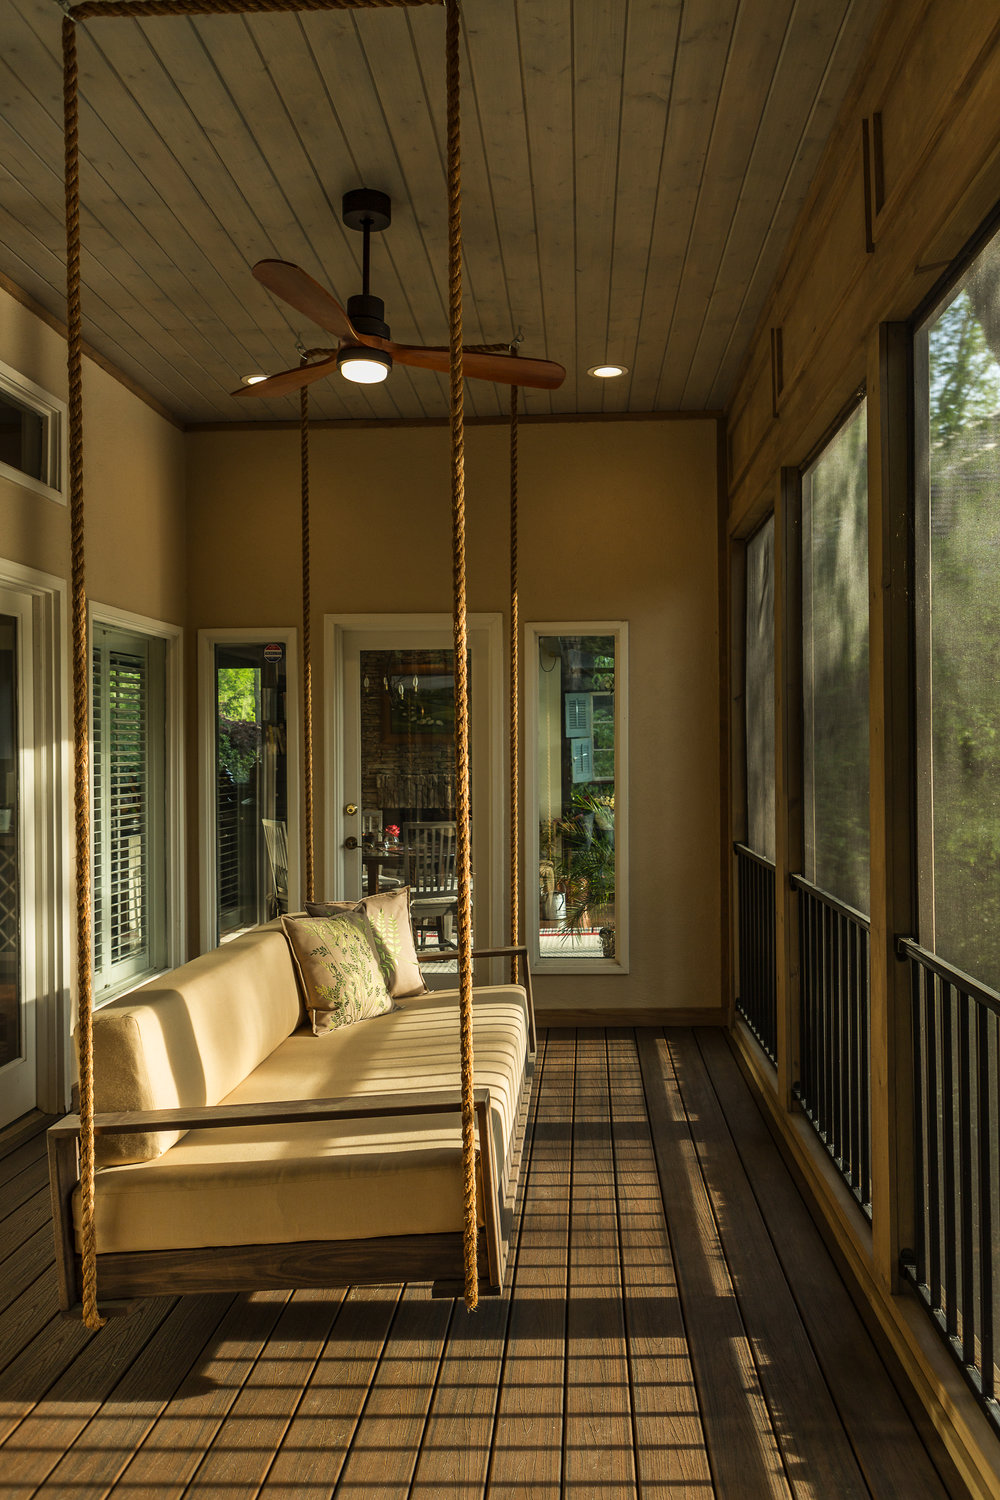 Swing Porch Bed Lounger Product Shoot for Direct Build